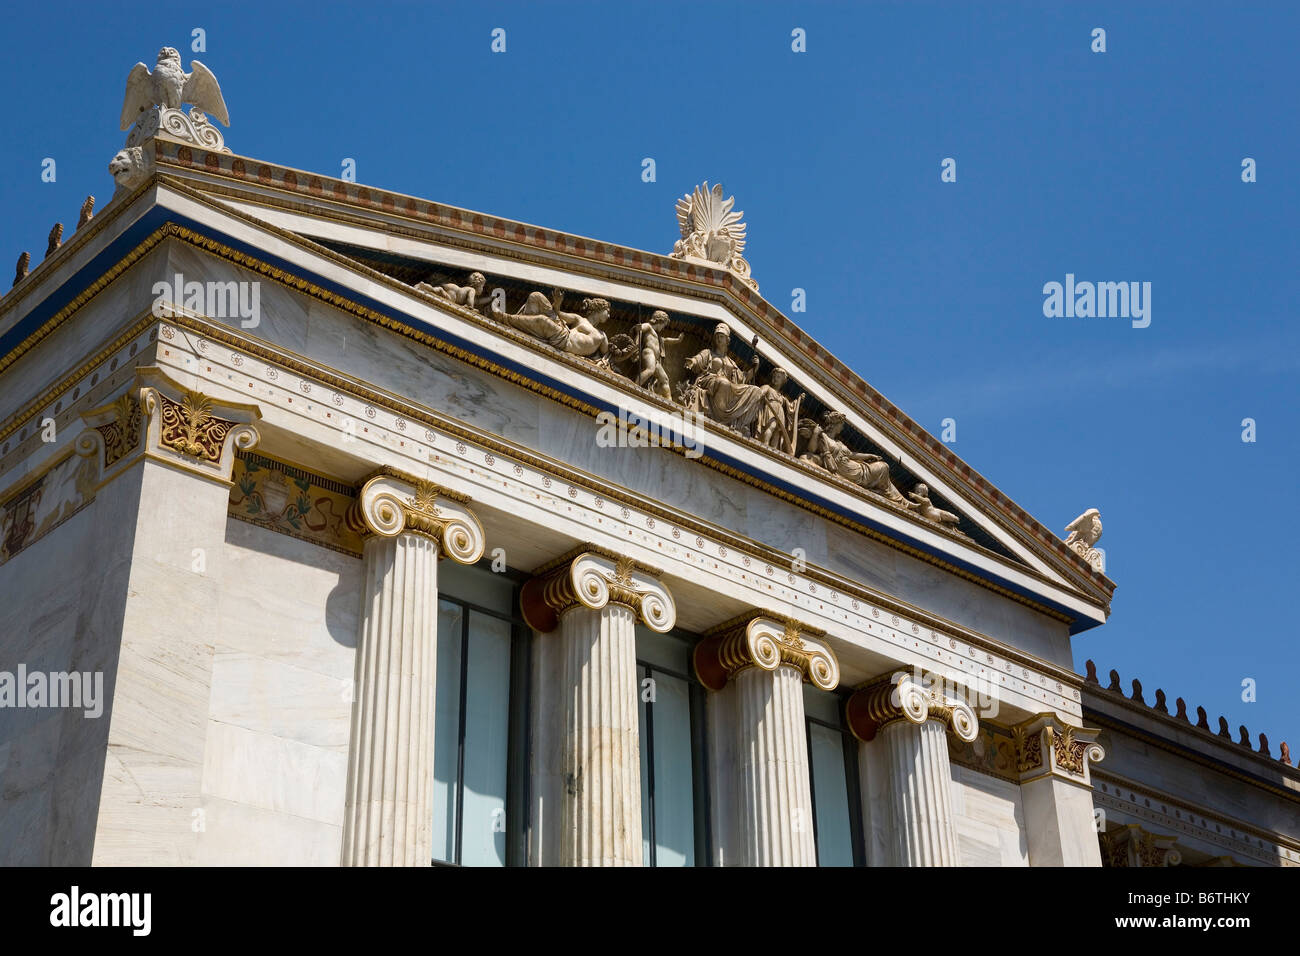 Greece Athens Academy of sciences building - Stock Image